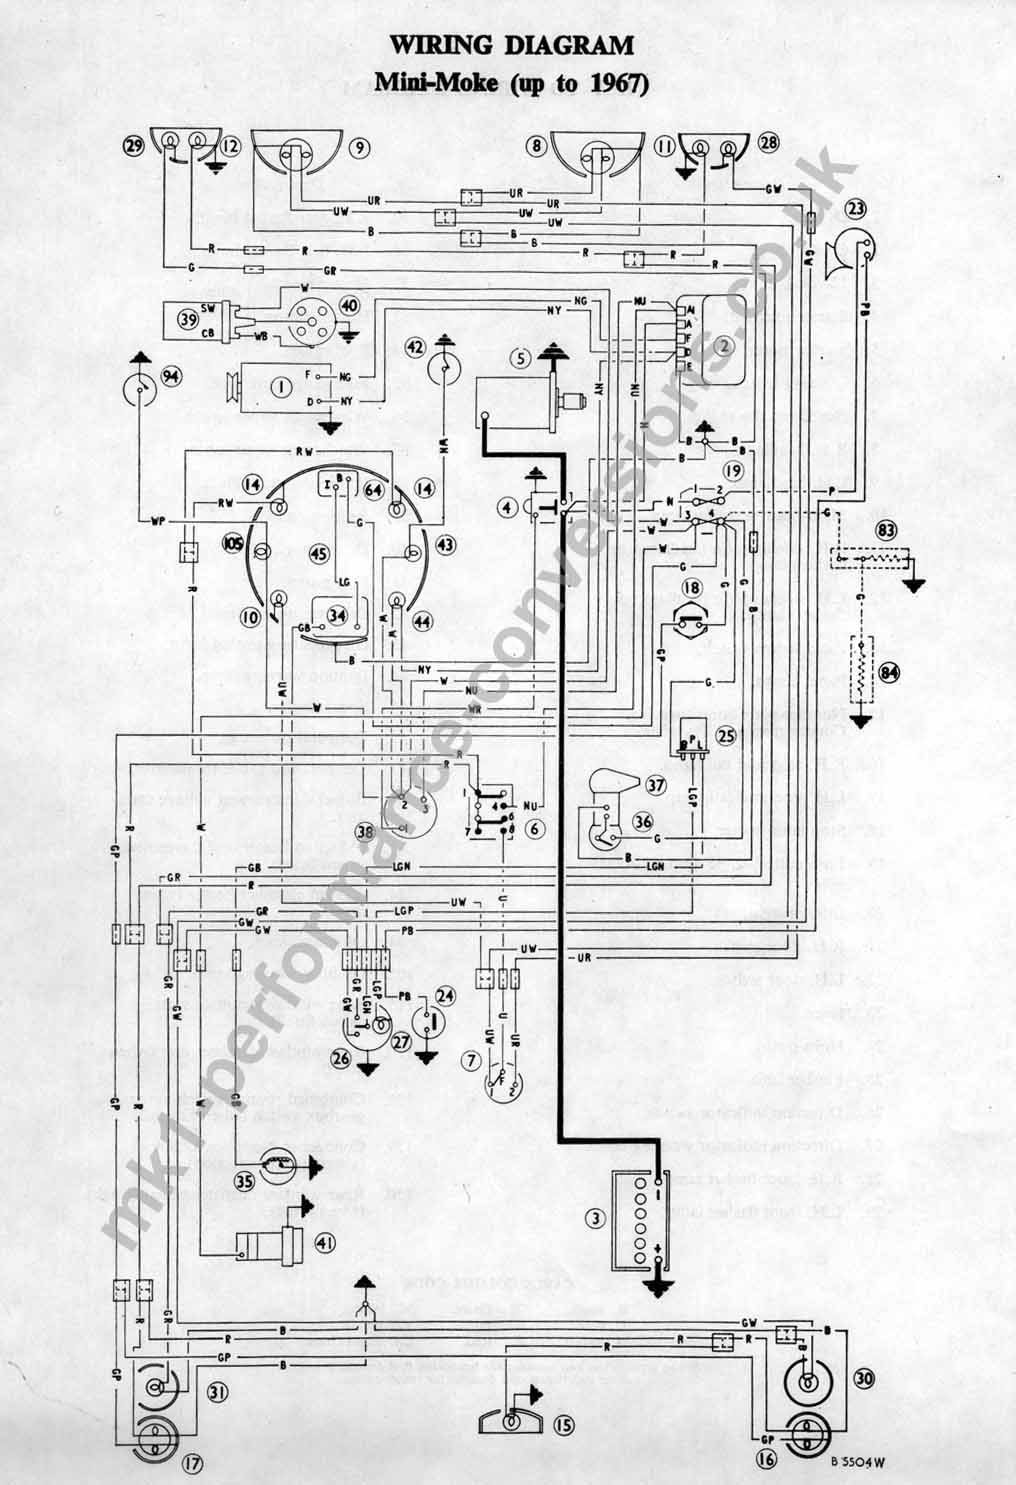 Austin 10 4 Wiring Diagram 26 Images Mini Cooper Speakers Kitchen Electrical Diagrams Residential Classic Mk1 Moke